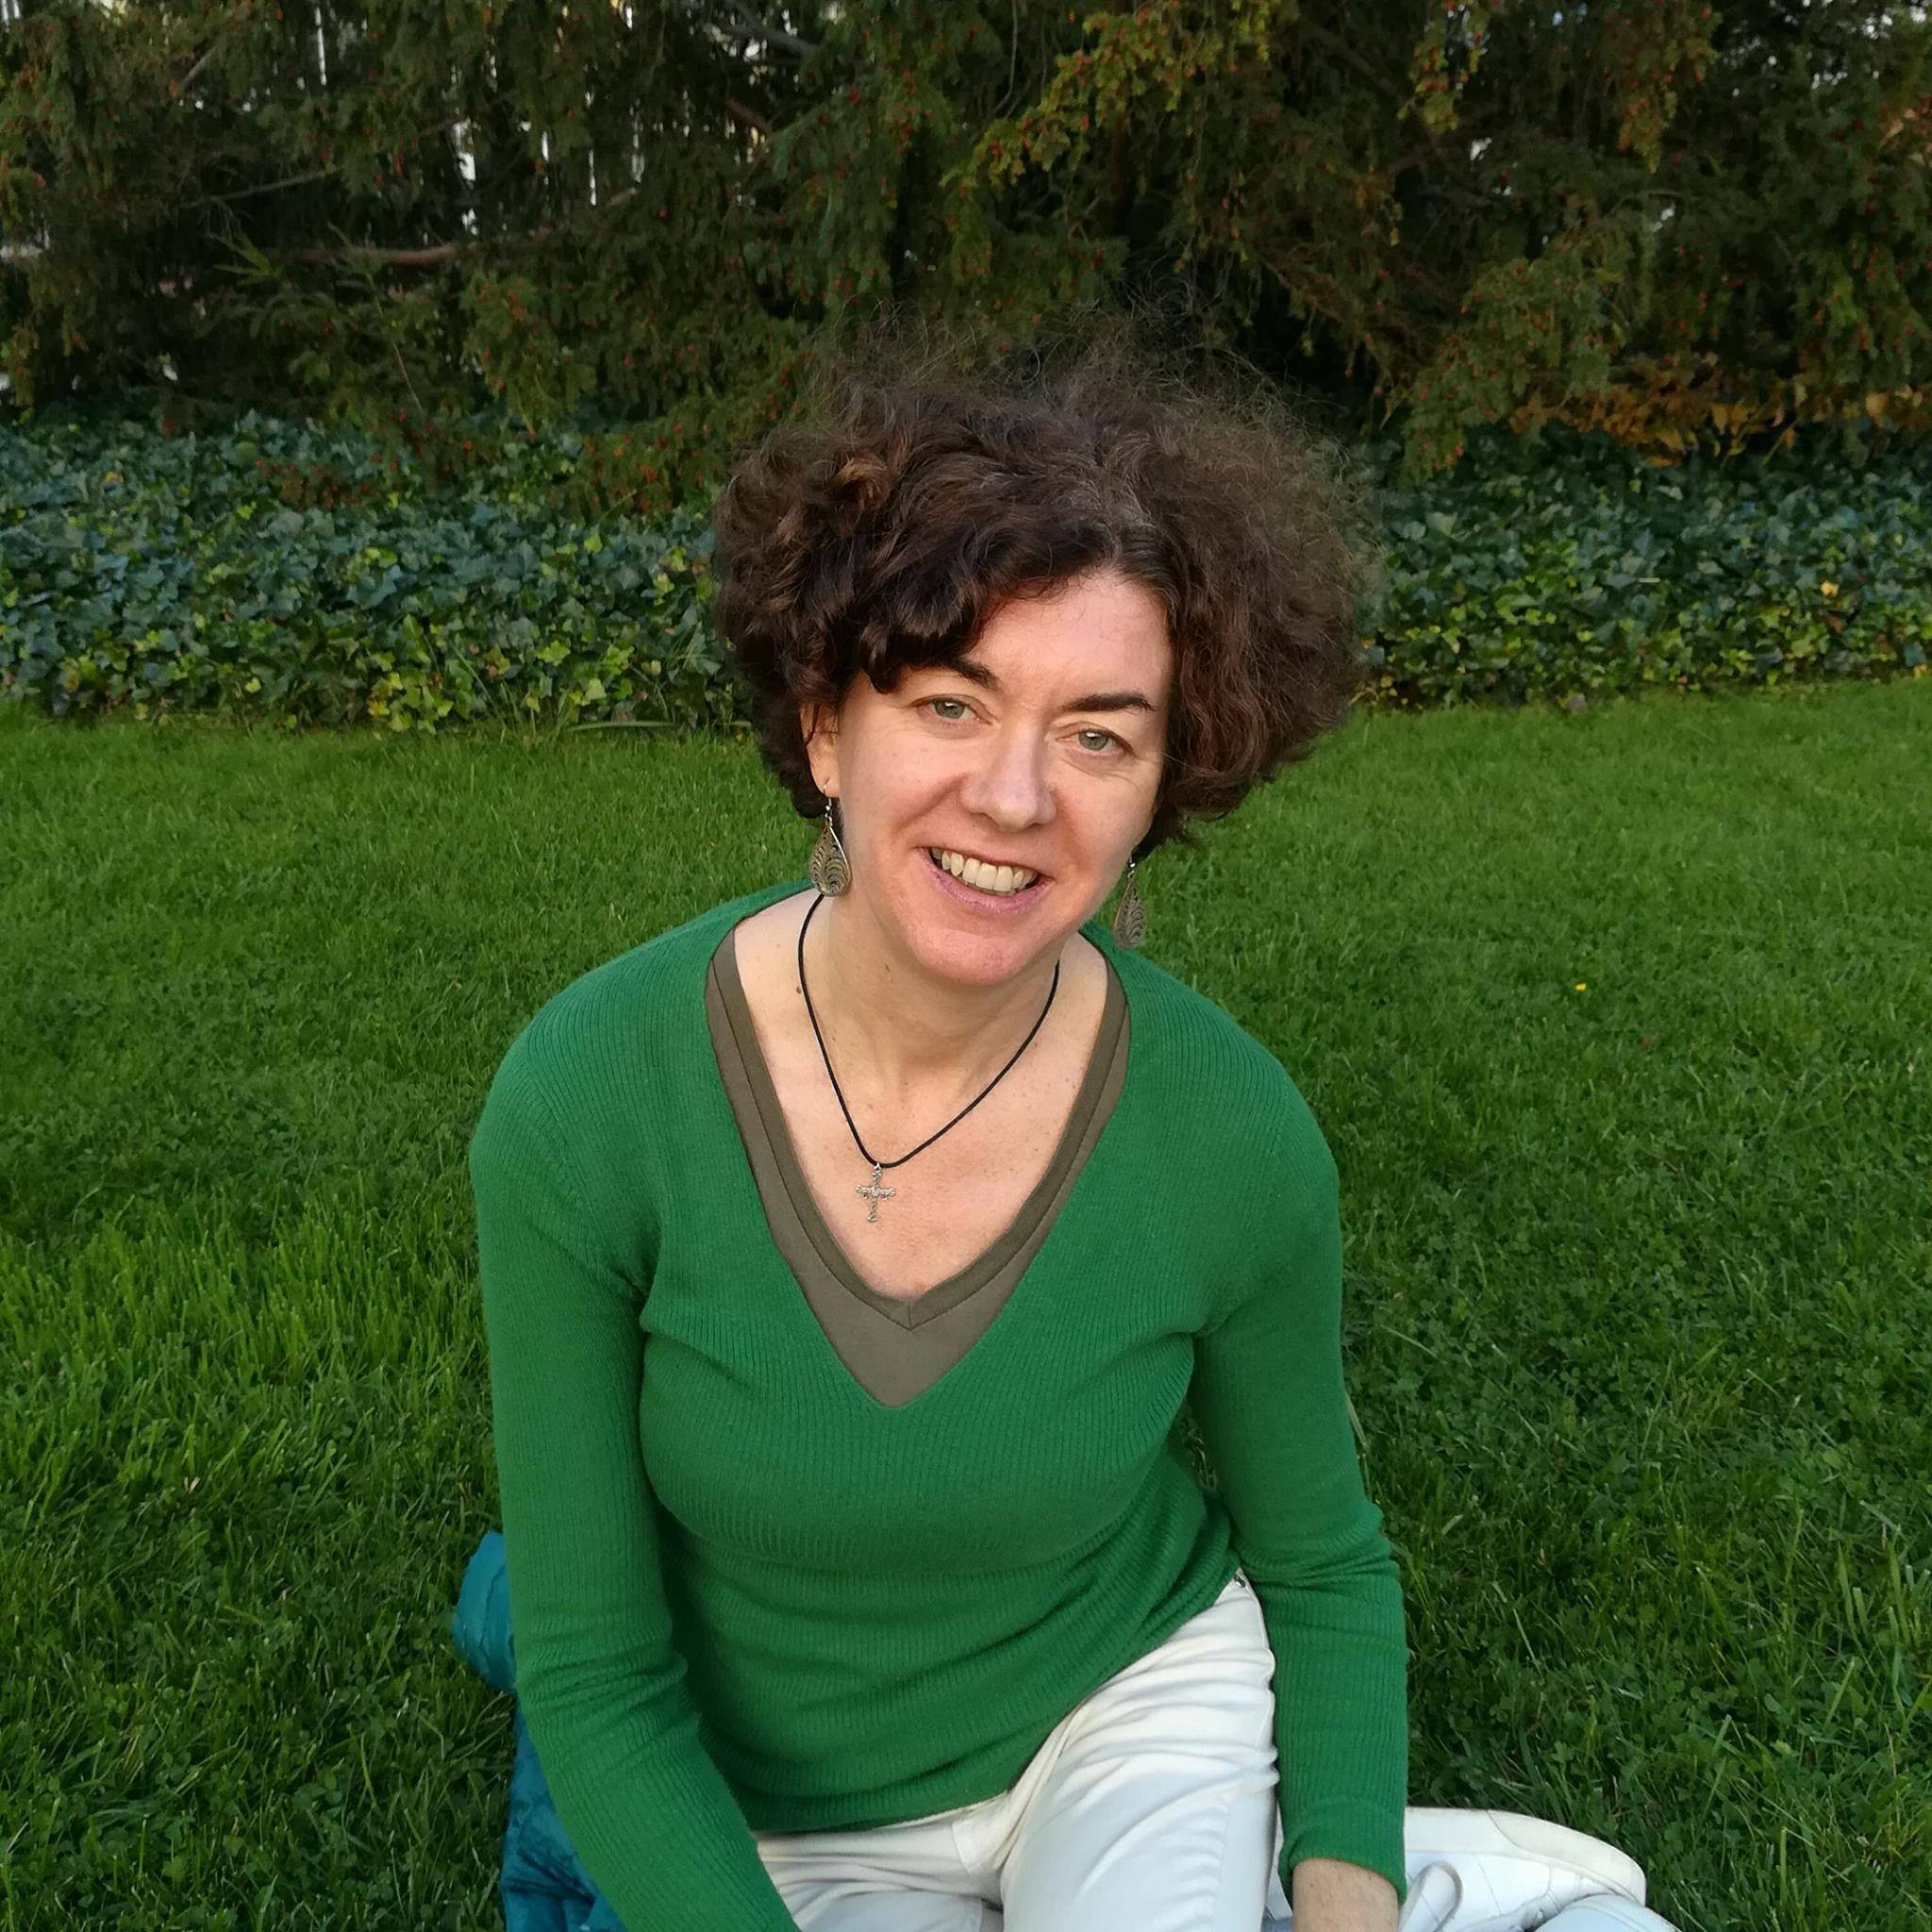 Woman wearing a green shirt against a background of green grass